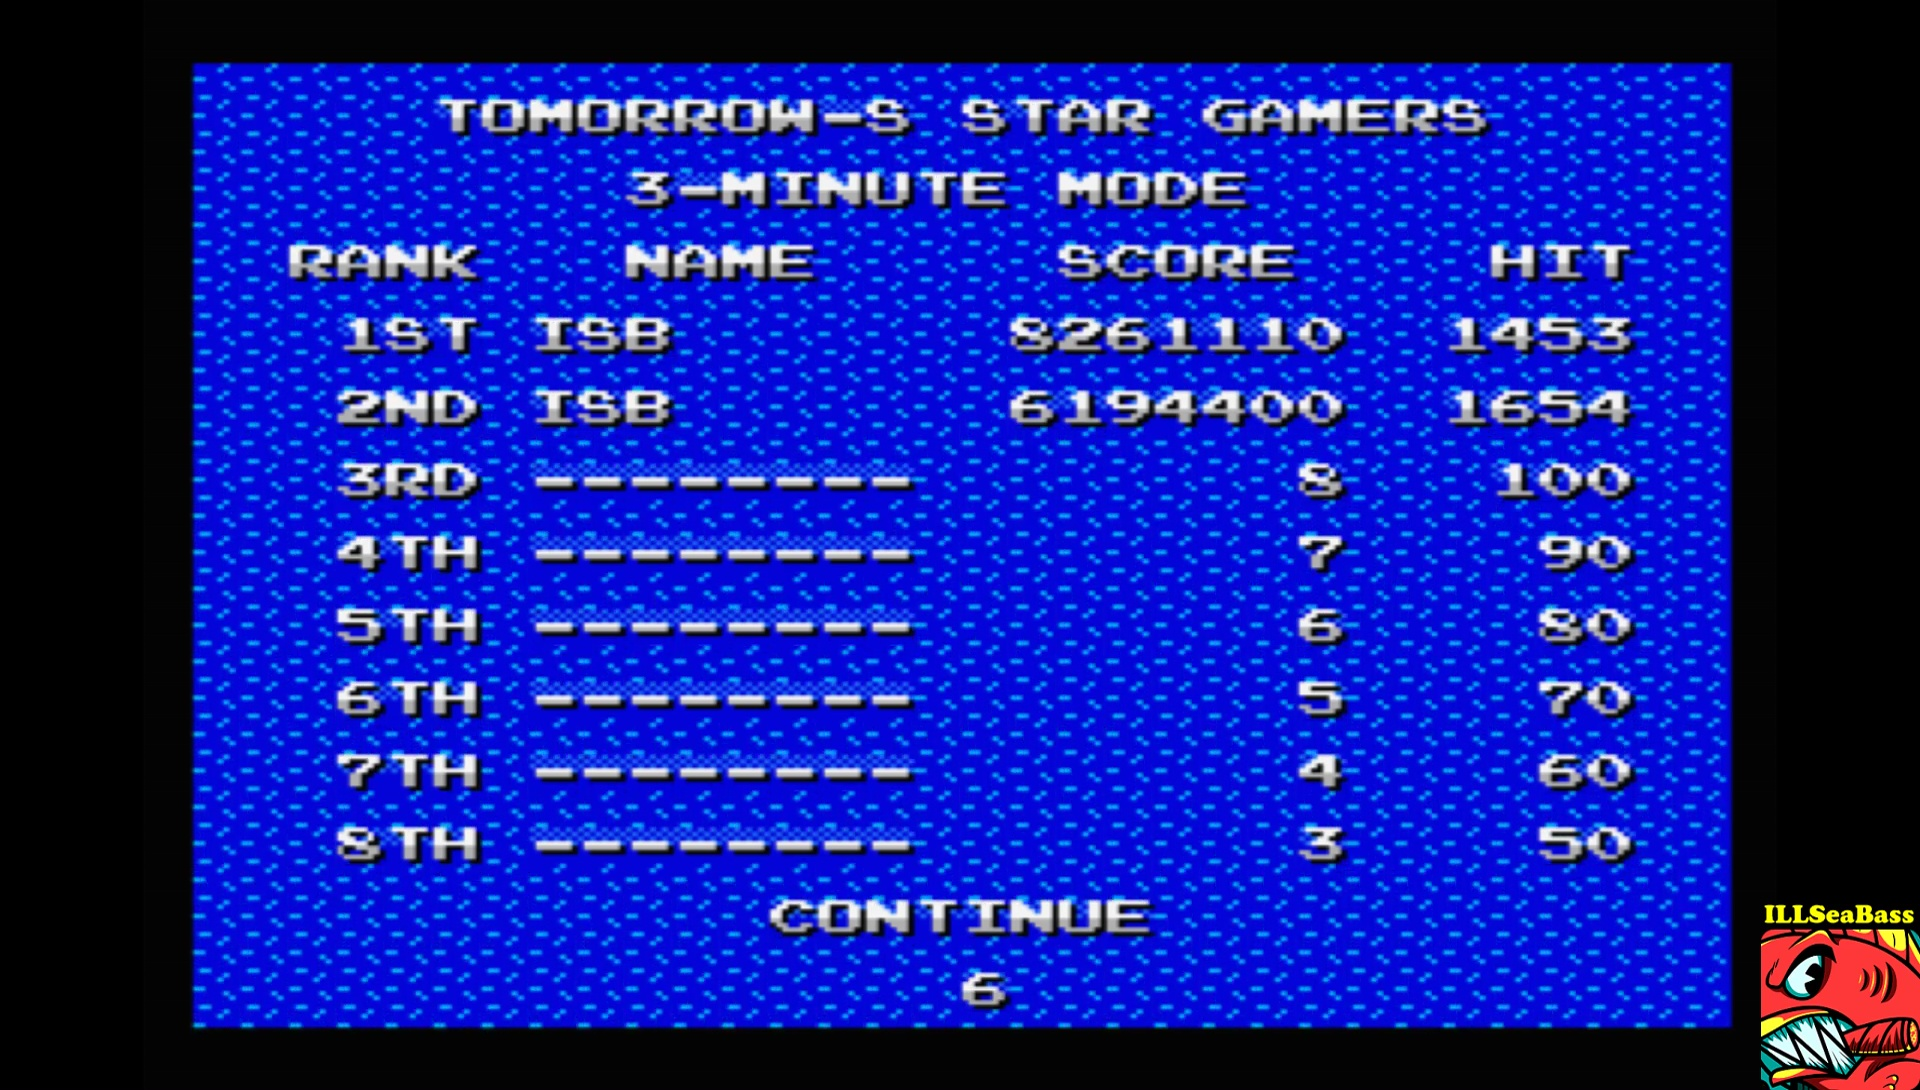 ILLSeaBass: Kyokugen [Time Attack 3] (MSX Emulated) 8,261,110 points on 2017-08-26 14:22:18